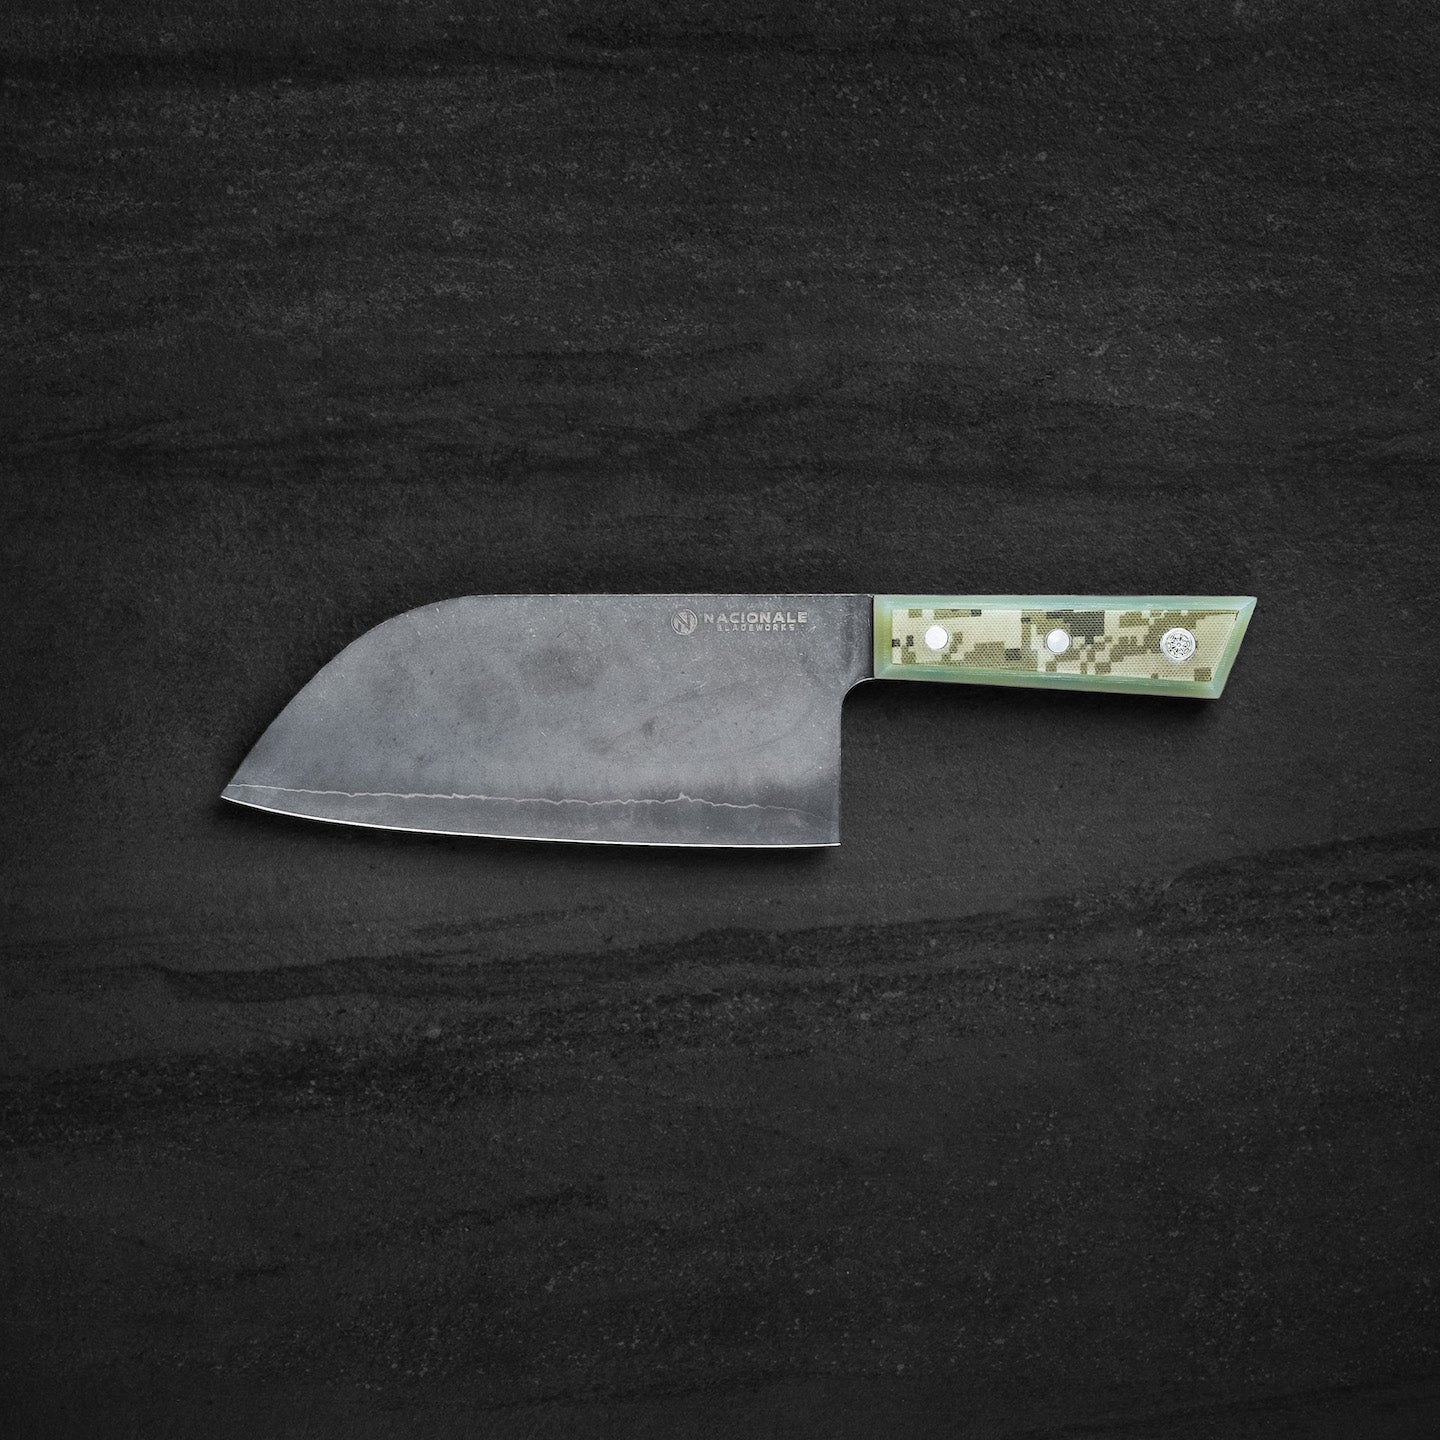 180mm Extra Tall Santoku. Full Tang Digital Camou G10 Scales. Ballistic Nylon Case.